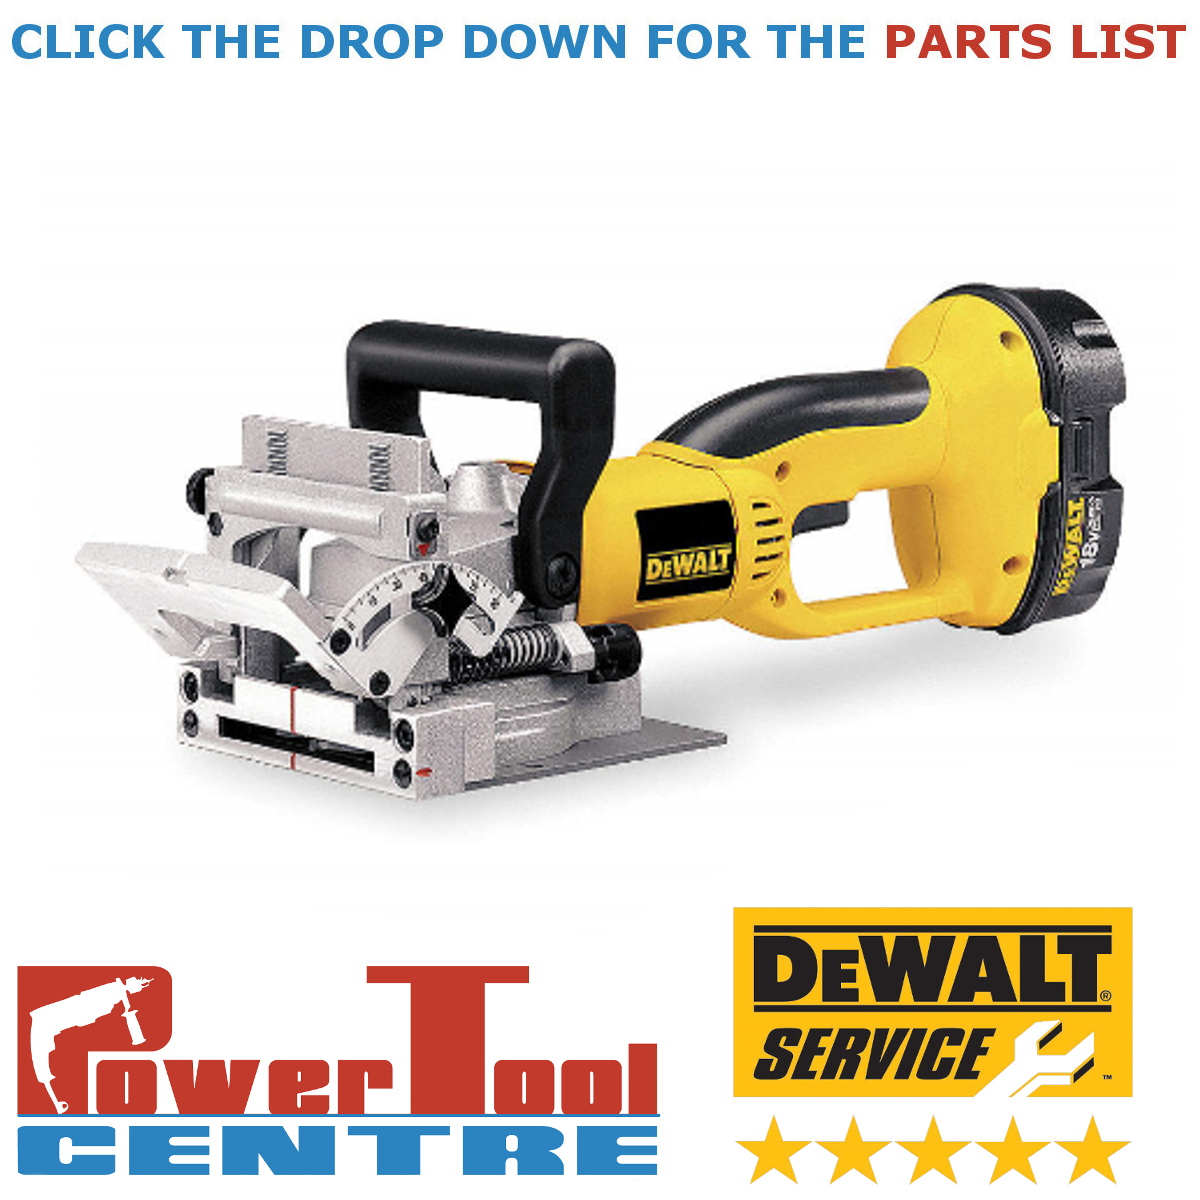 Original Dewalt Part 147749 00 Clamp